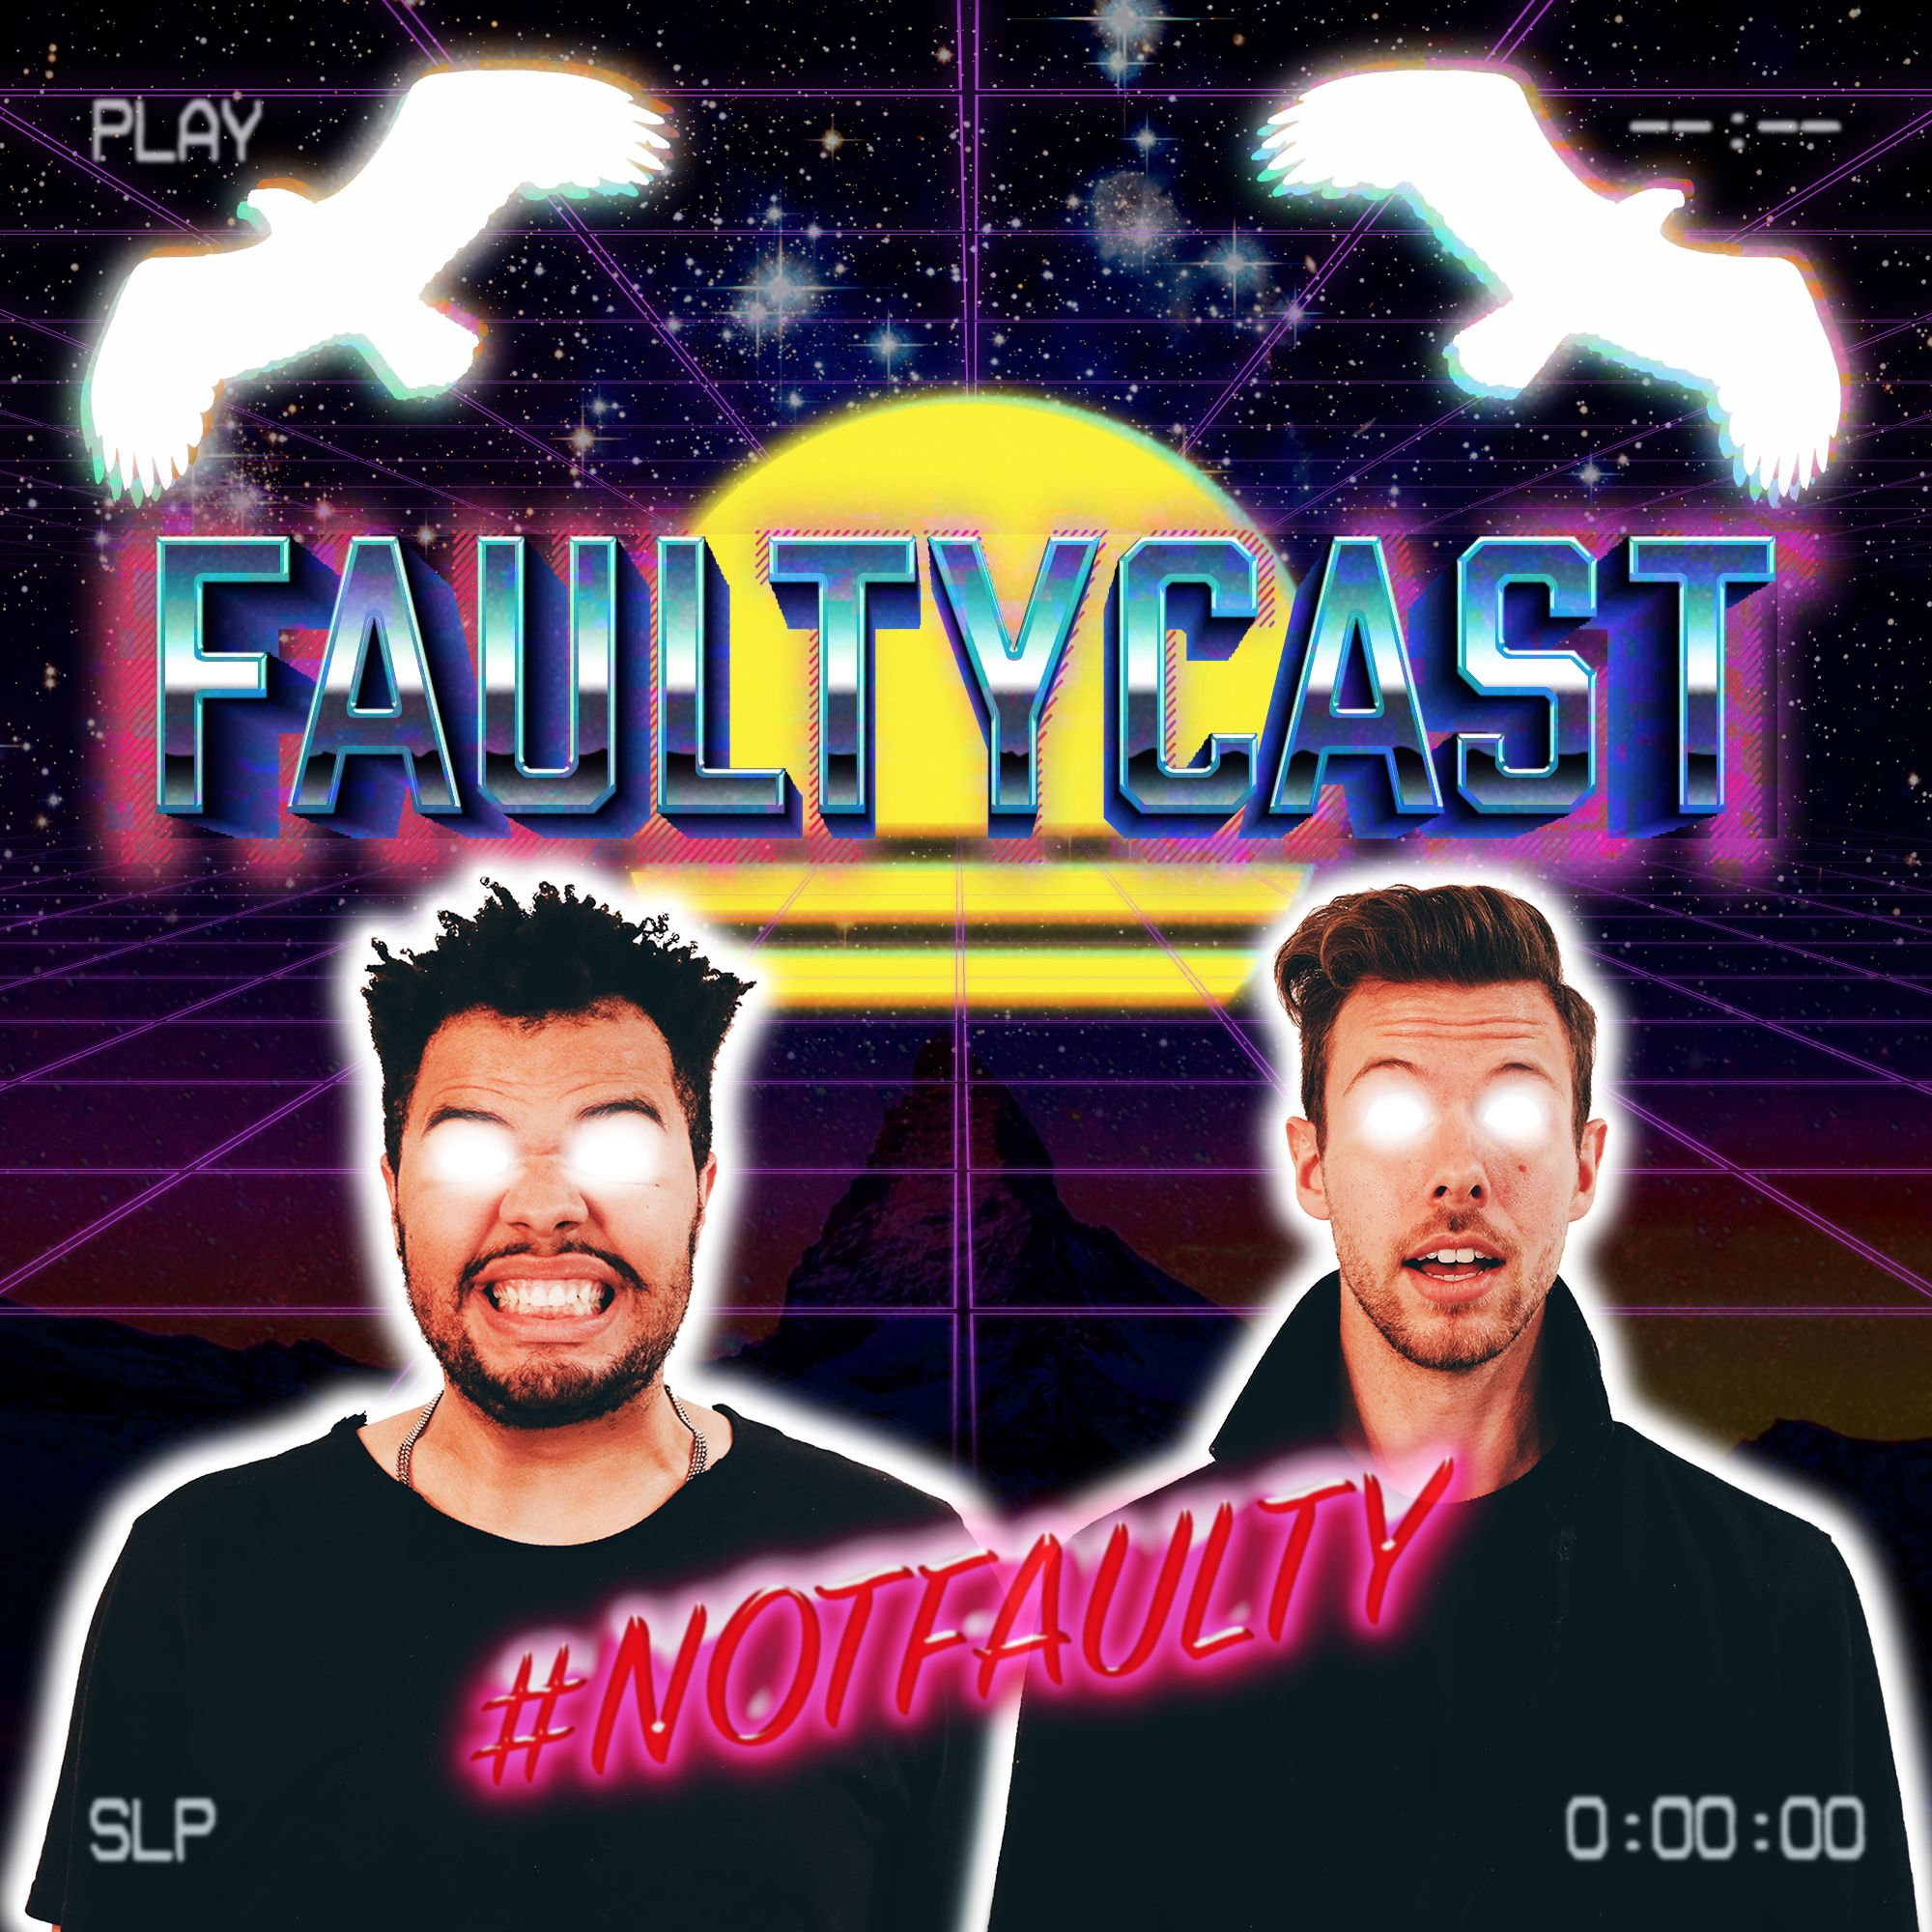 faultycast